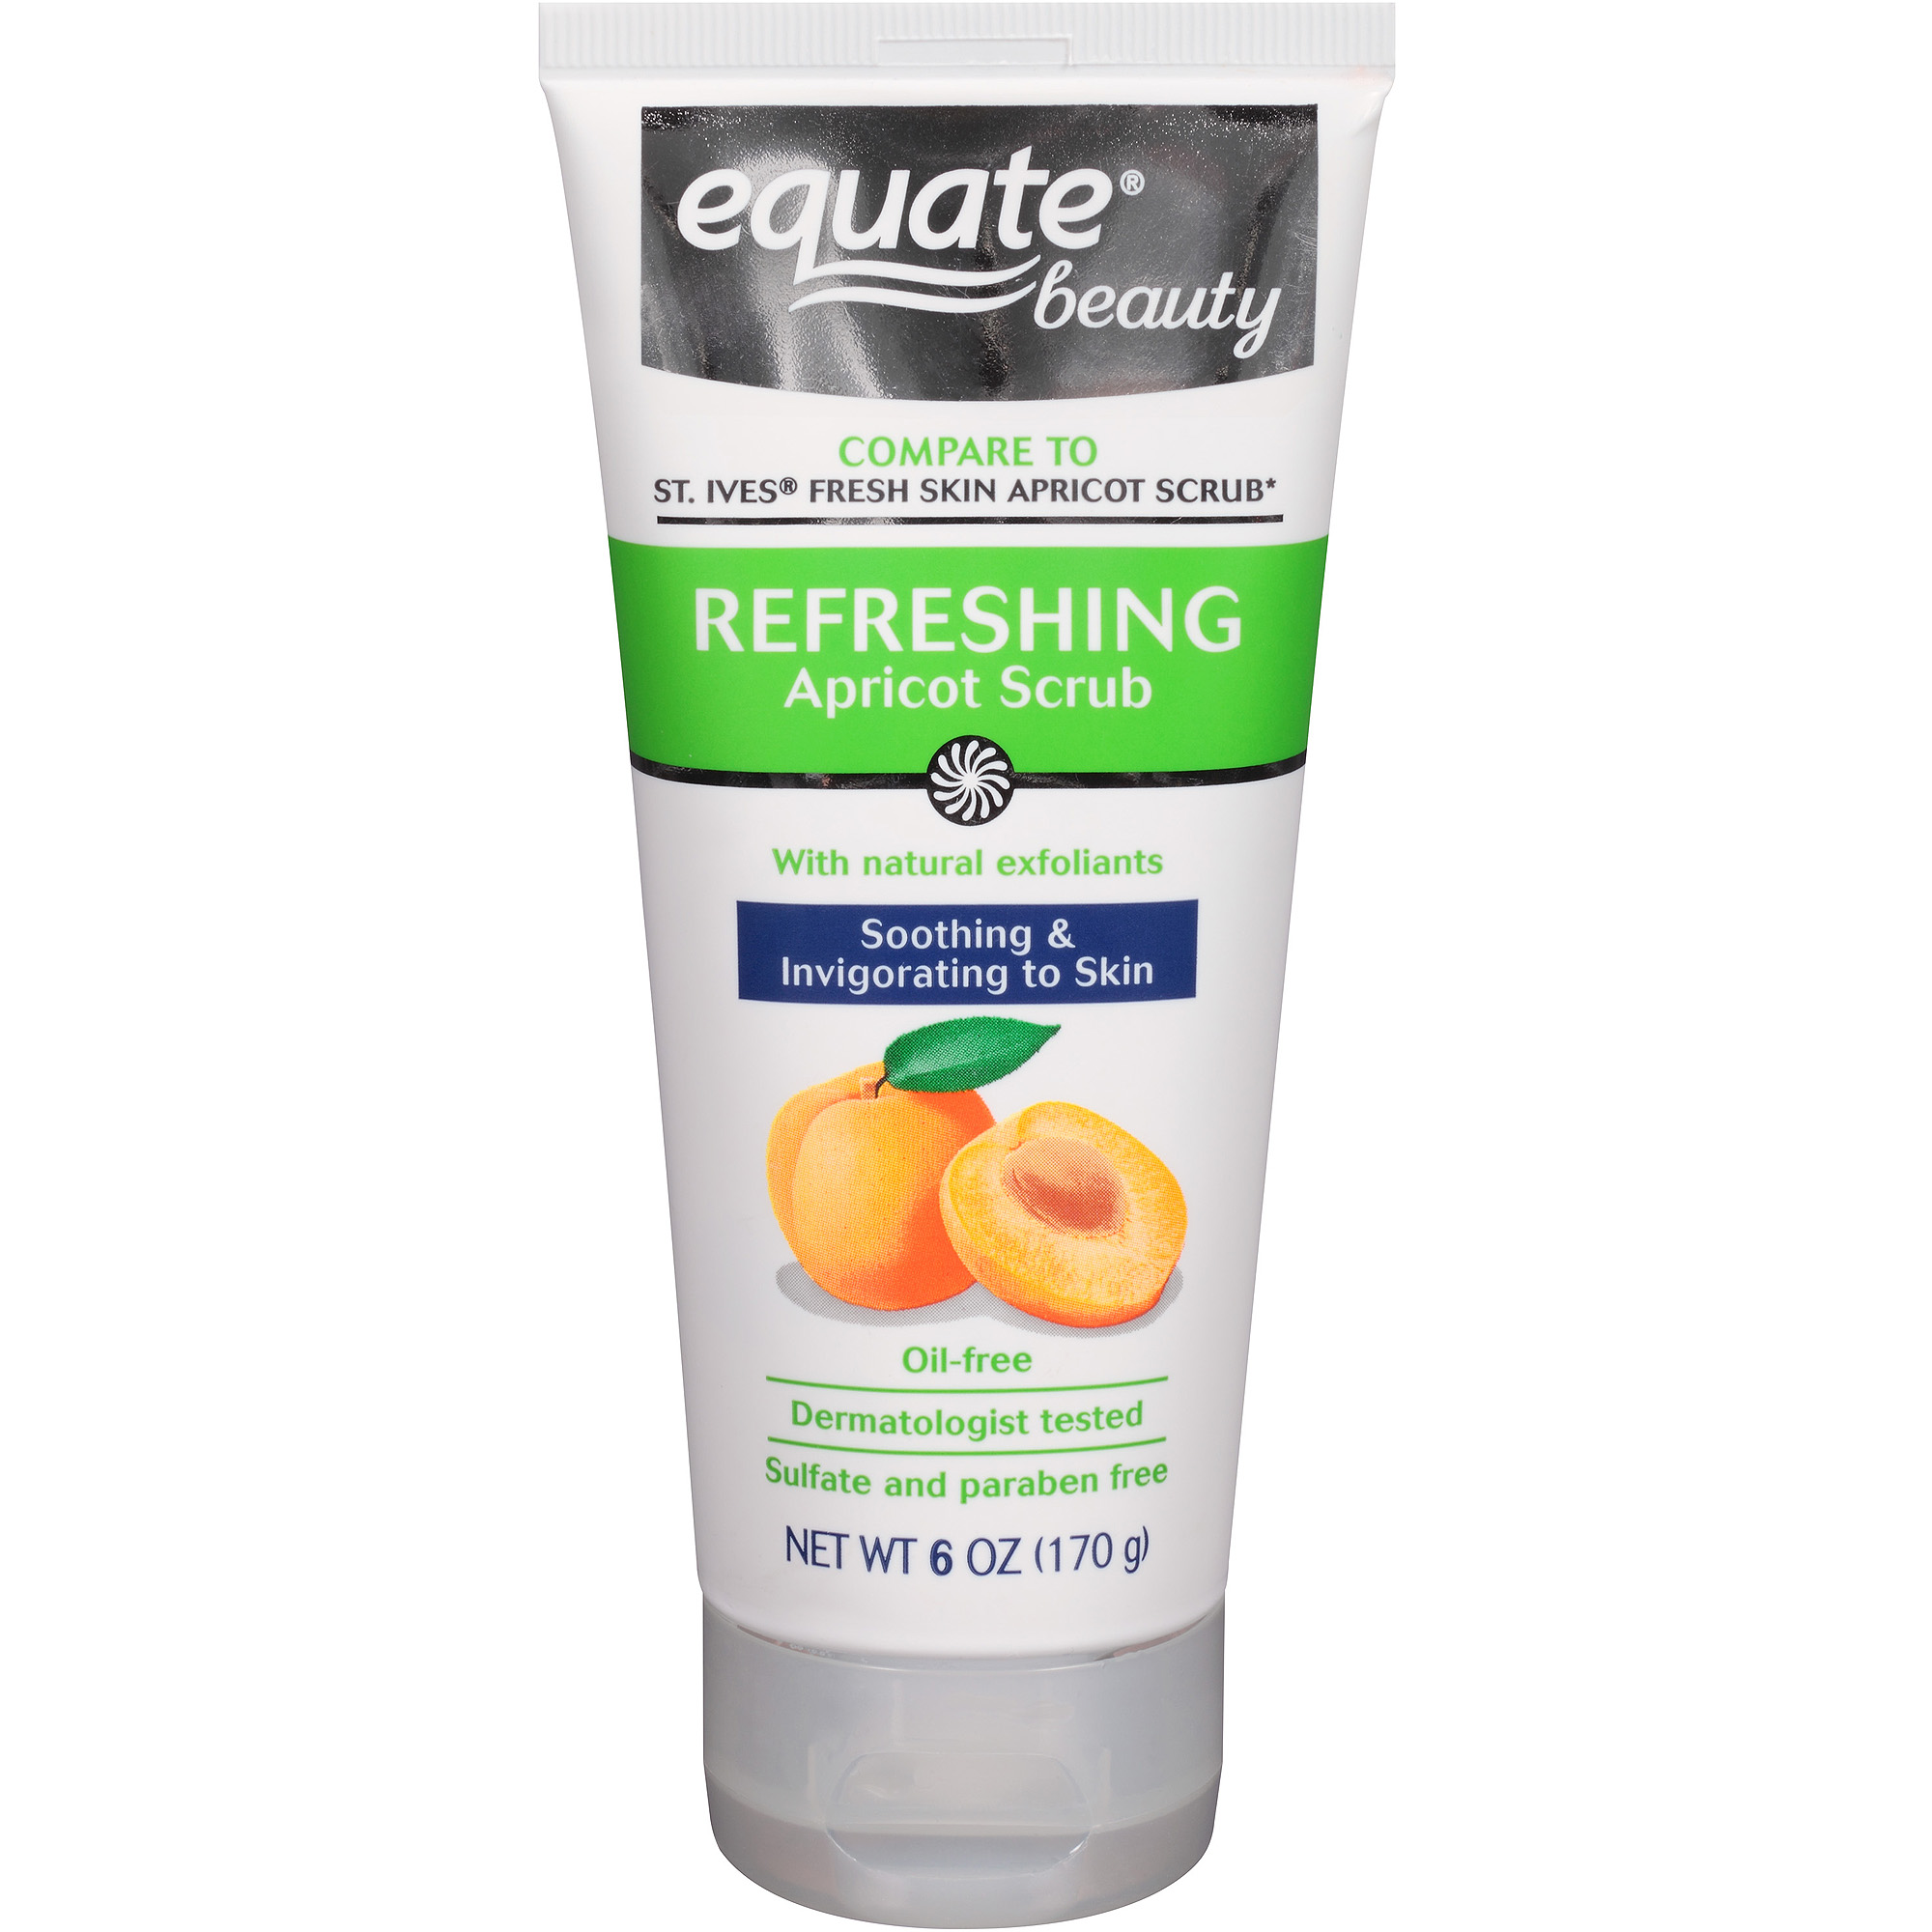 Equate Beauty Refreshing Apricot Scrub, 6 oz